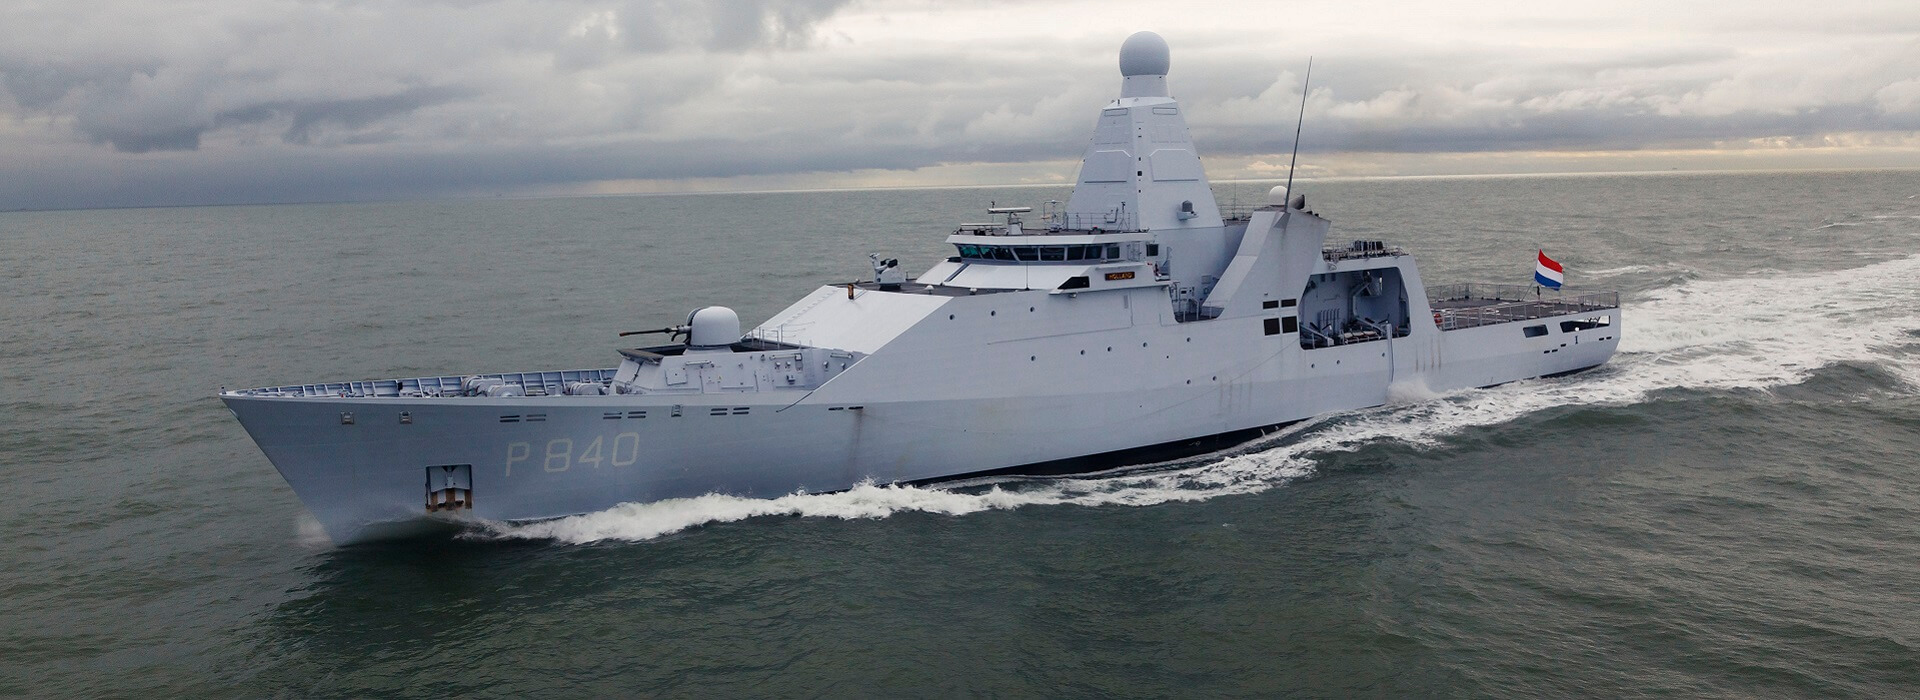 Zr.Ms. Friesland hull nr. 410